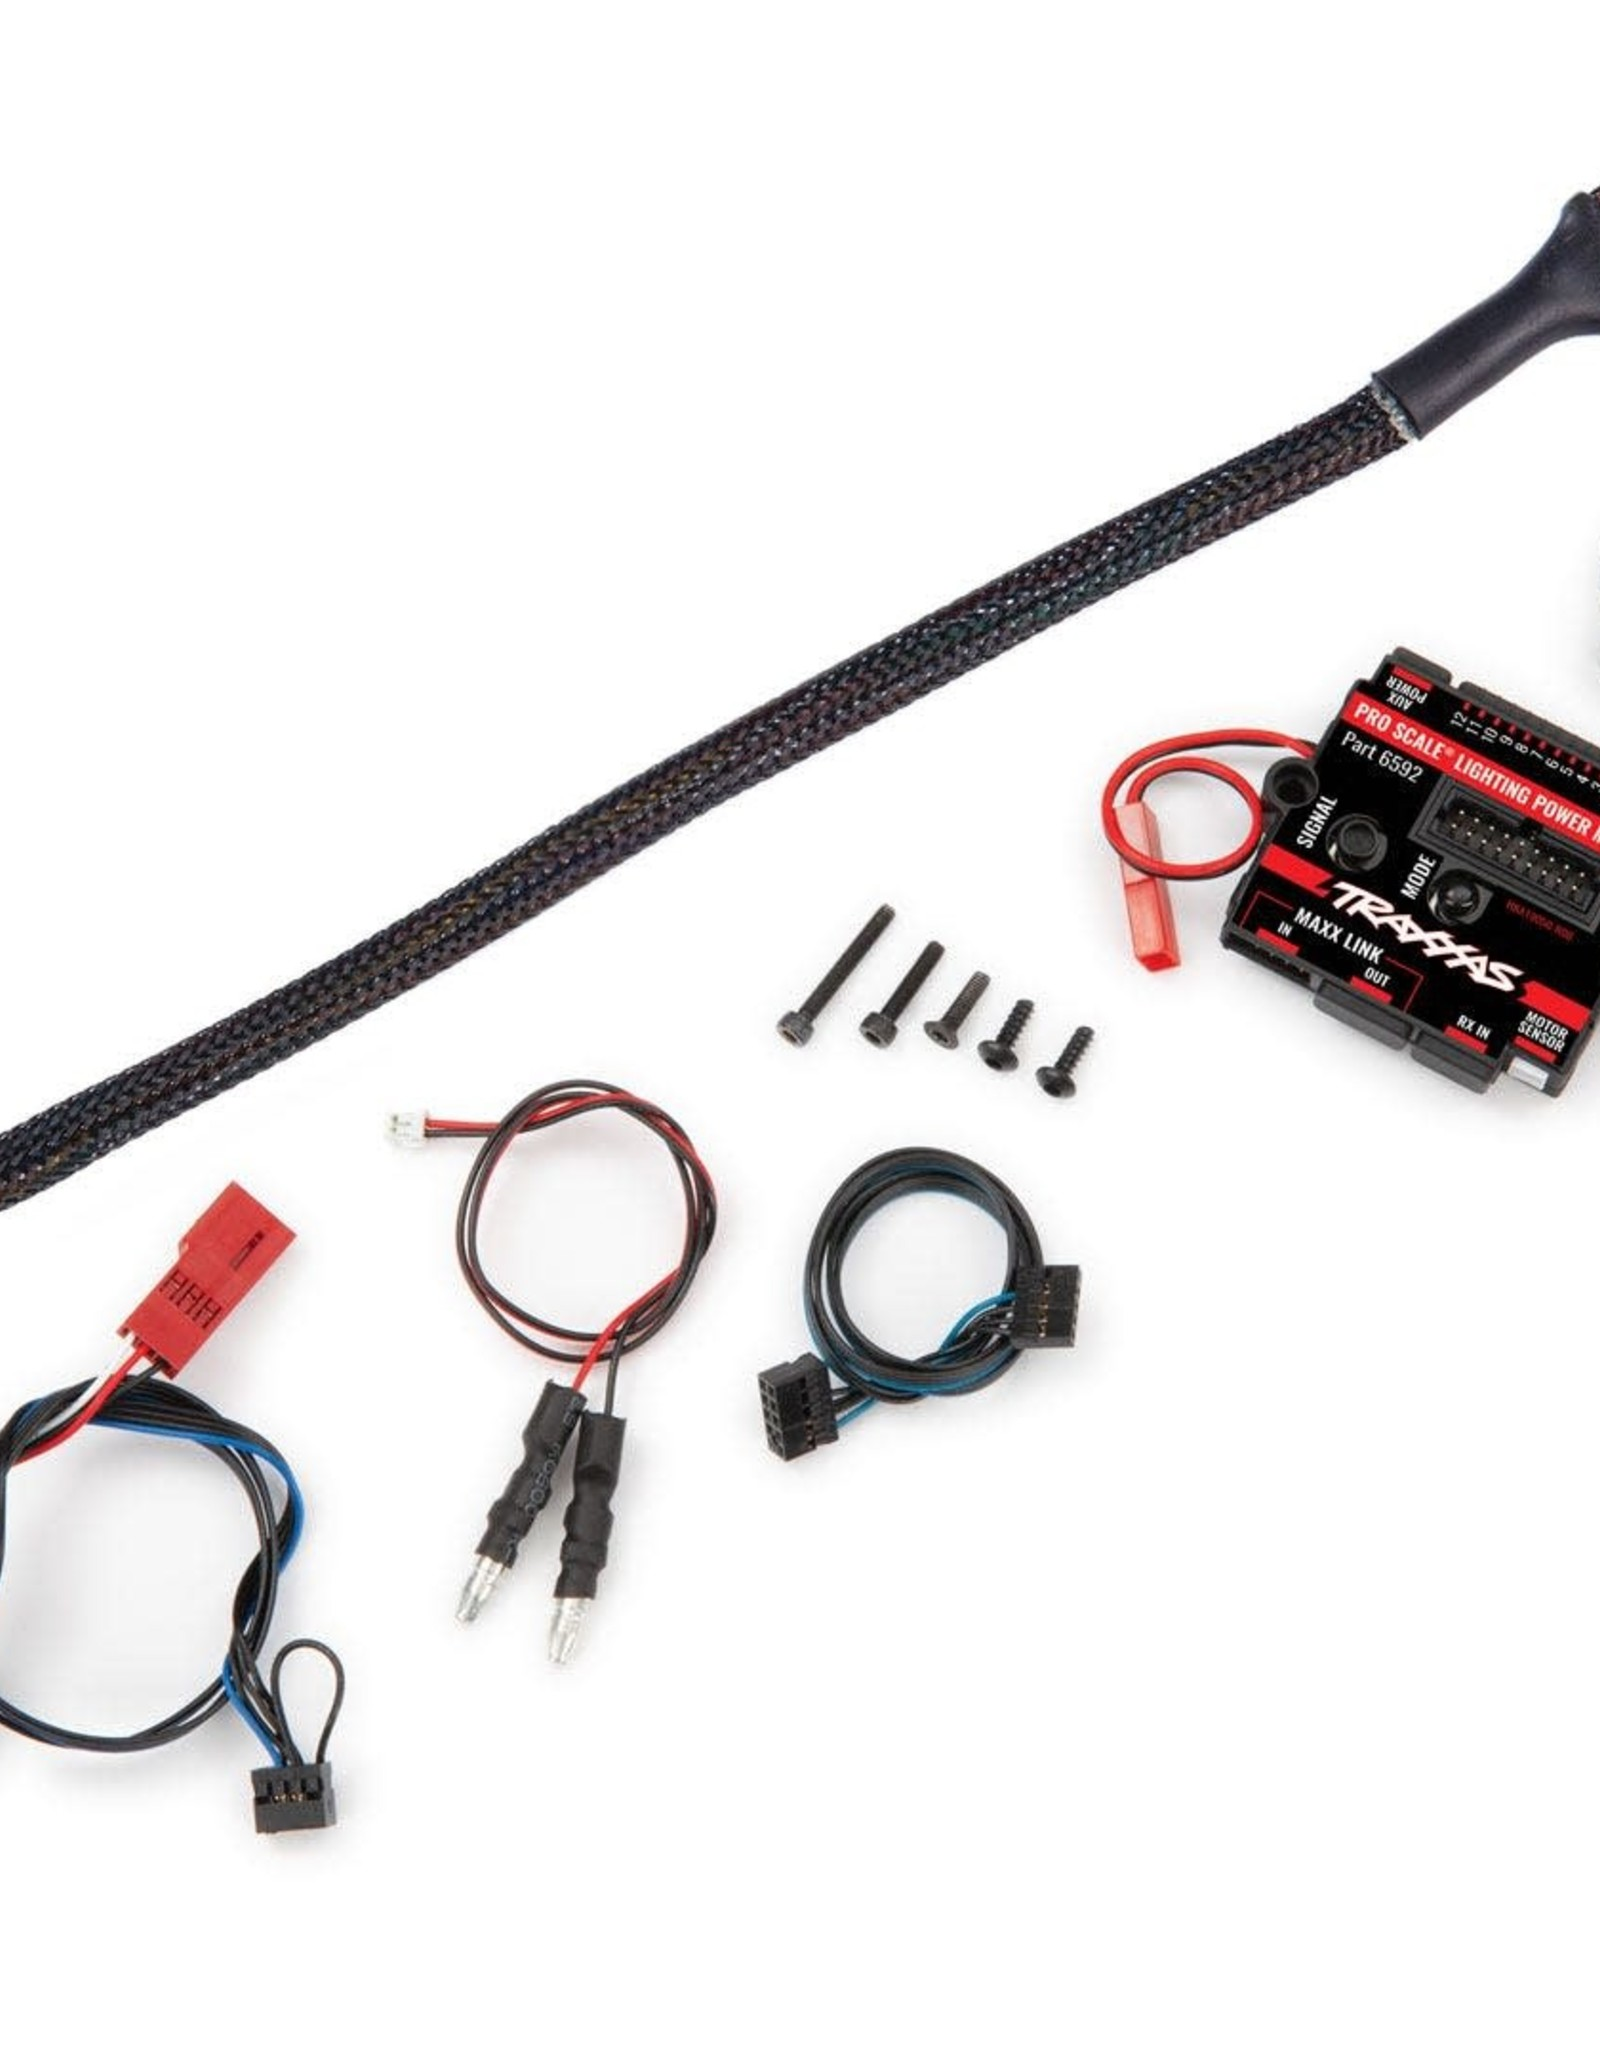 TRAXXAS PRO SCALE LED SYSTEM W/ MODULE Pro Scale® Advanced Lighting Control System (includes power module & distribution block)